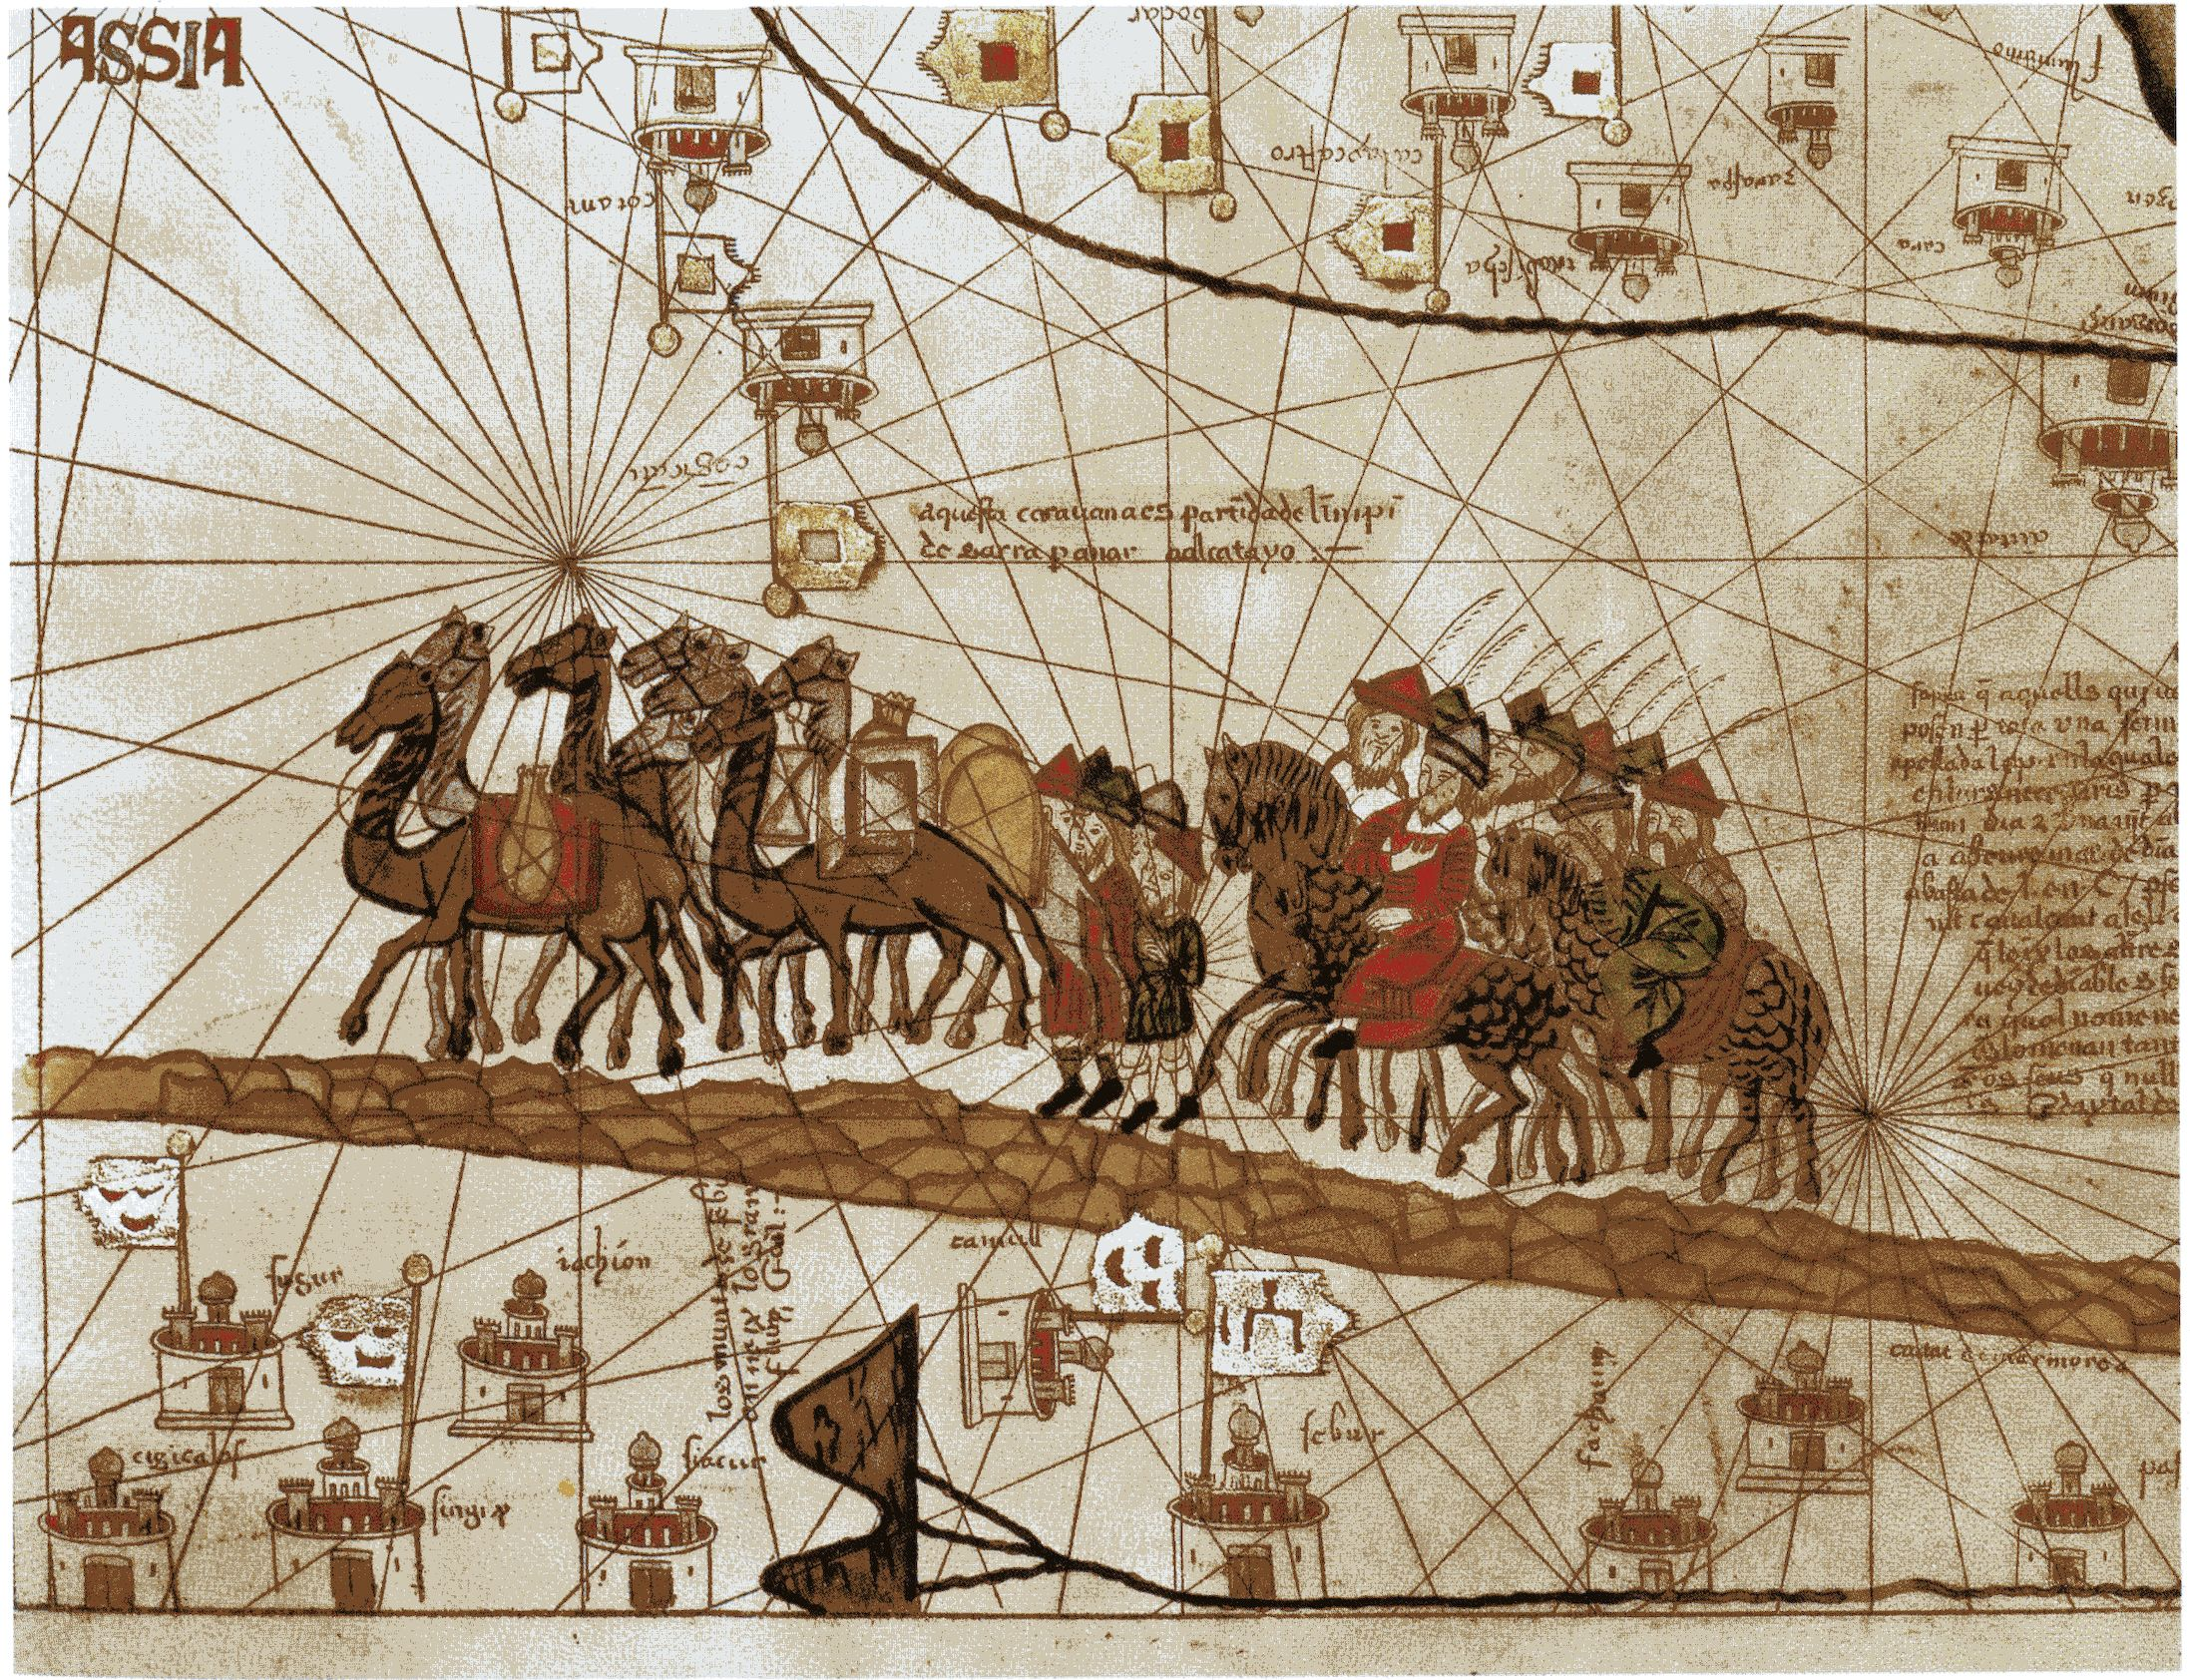 Trading silk road clipart graphic freeuse library Map Marco Polo\'s Caravan along the silk road. | Explorers of ... graphic freeuse library